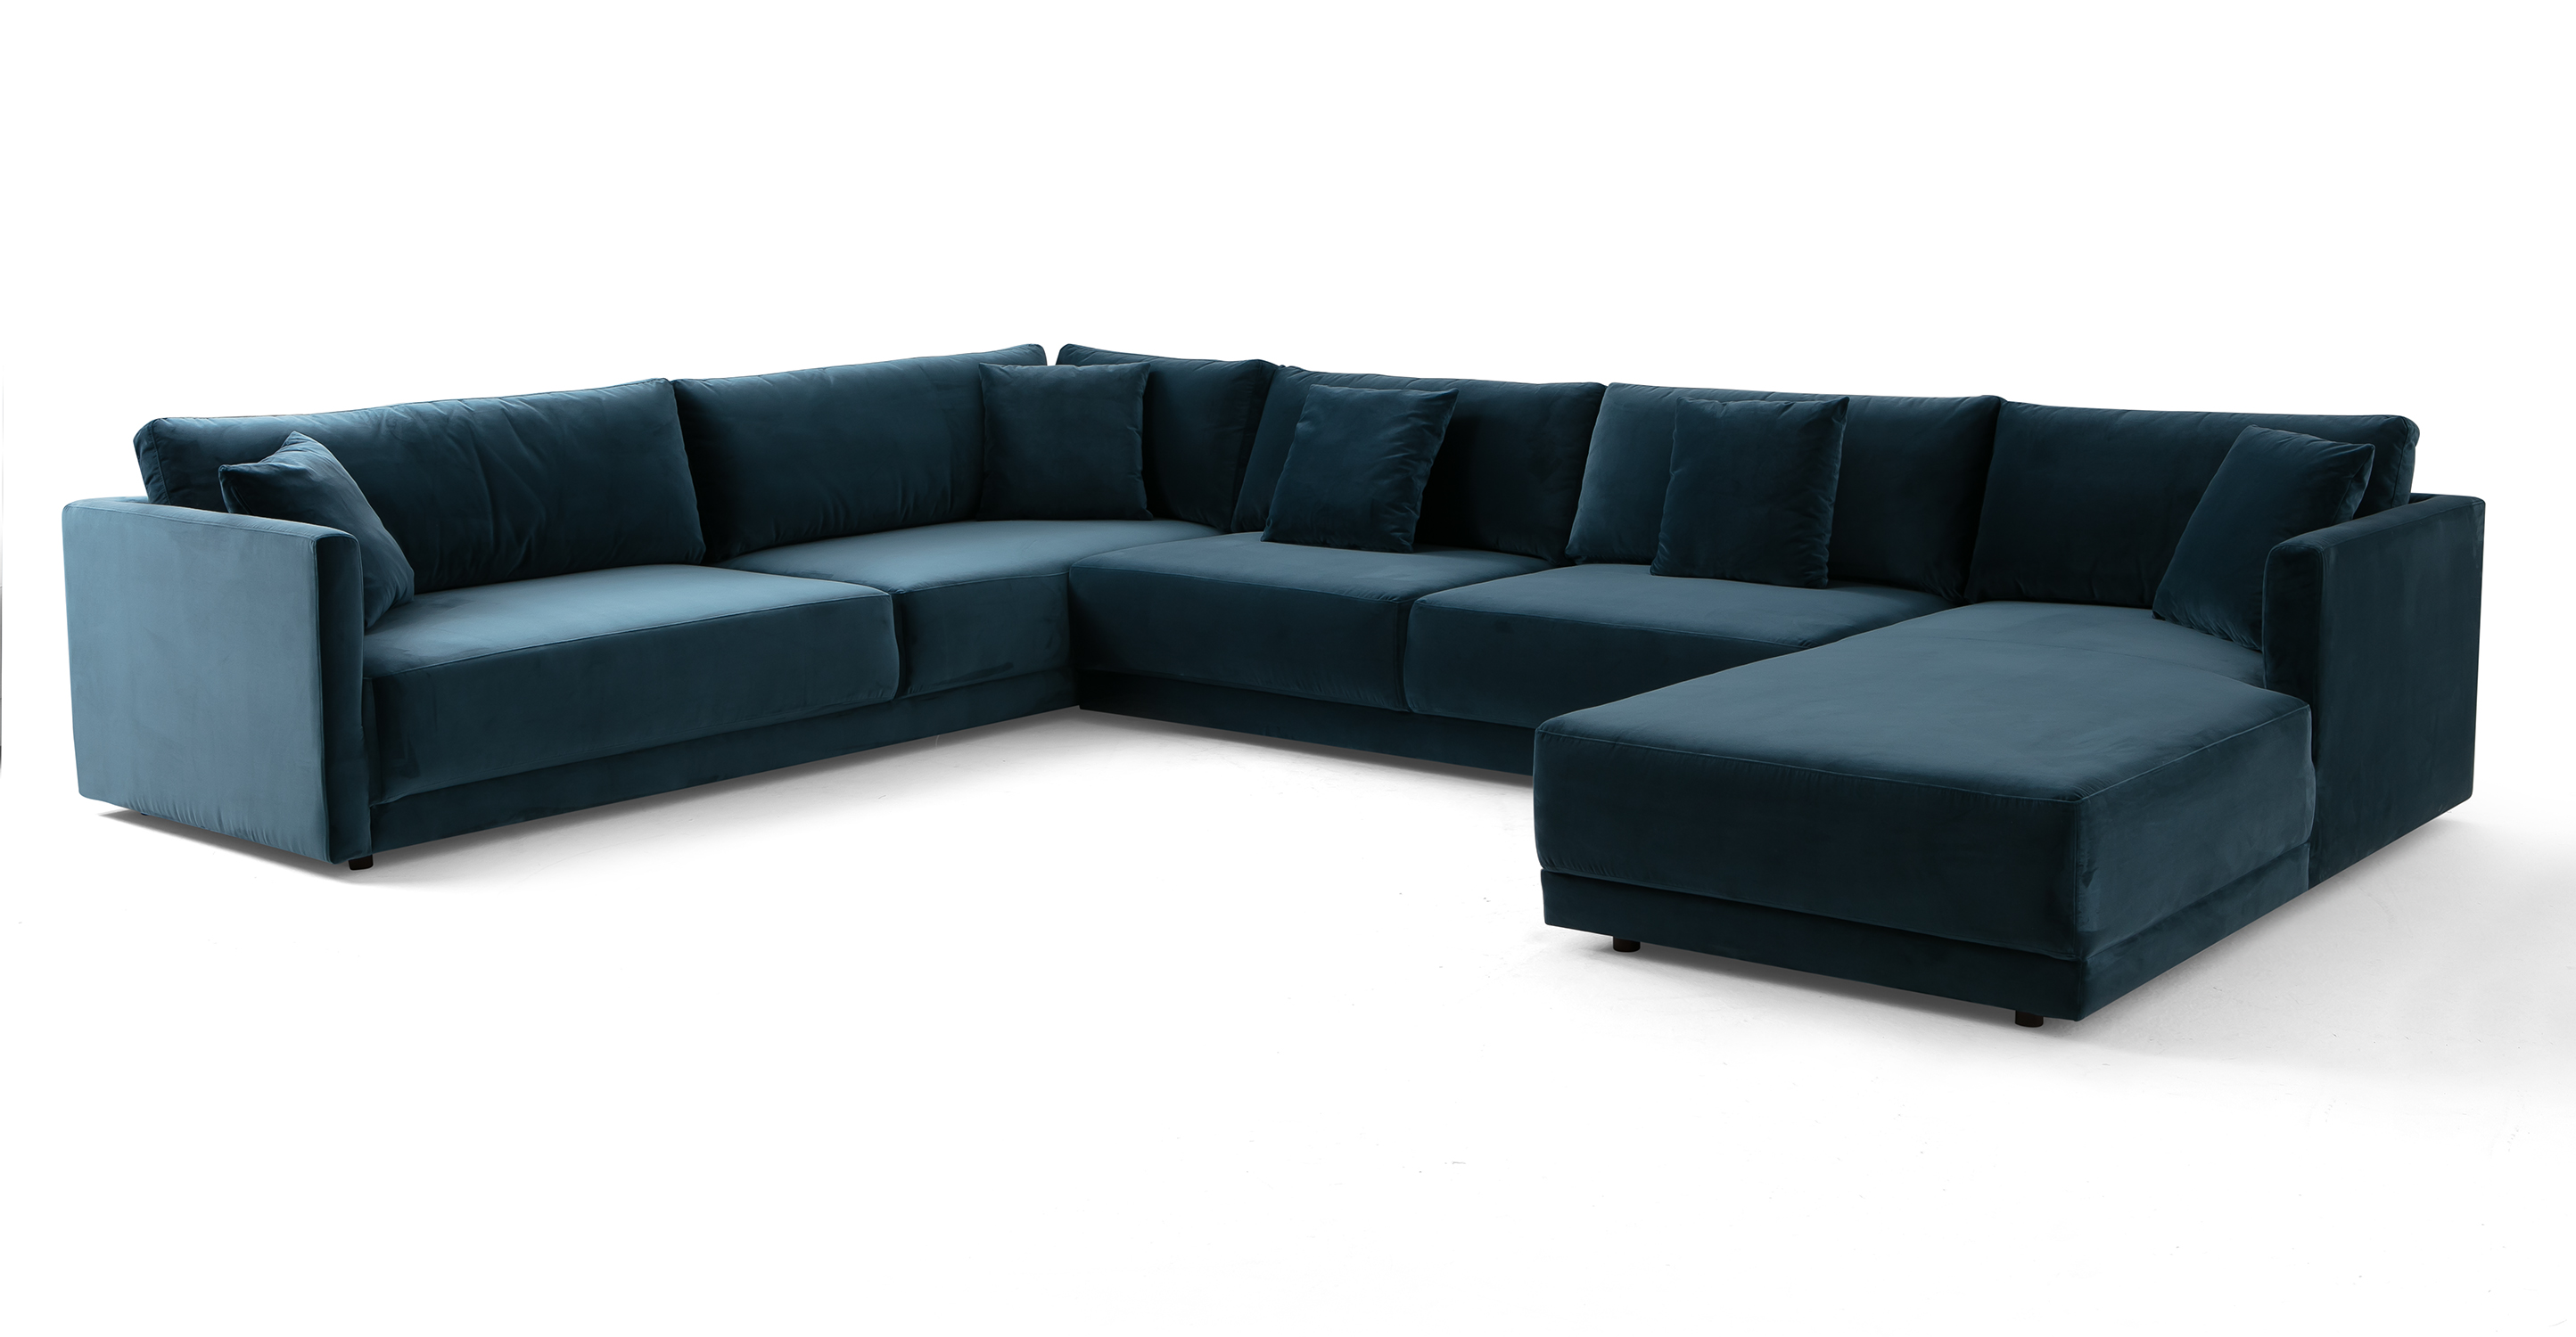 "Domus 155"" 3-pc 3-Sided Sofa Sectional Right, Petrol Velvet"